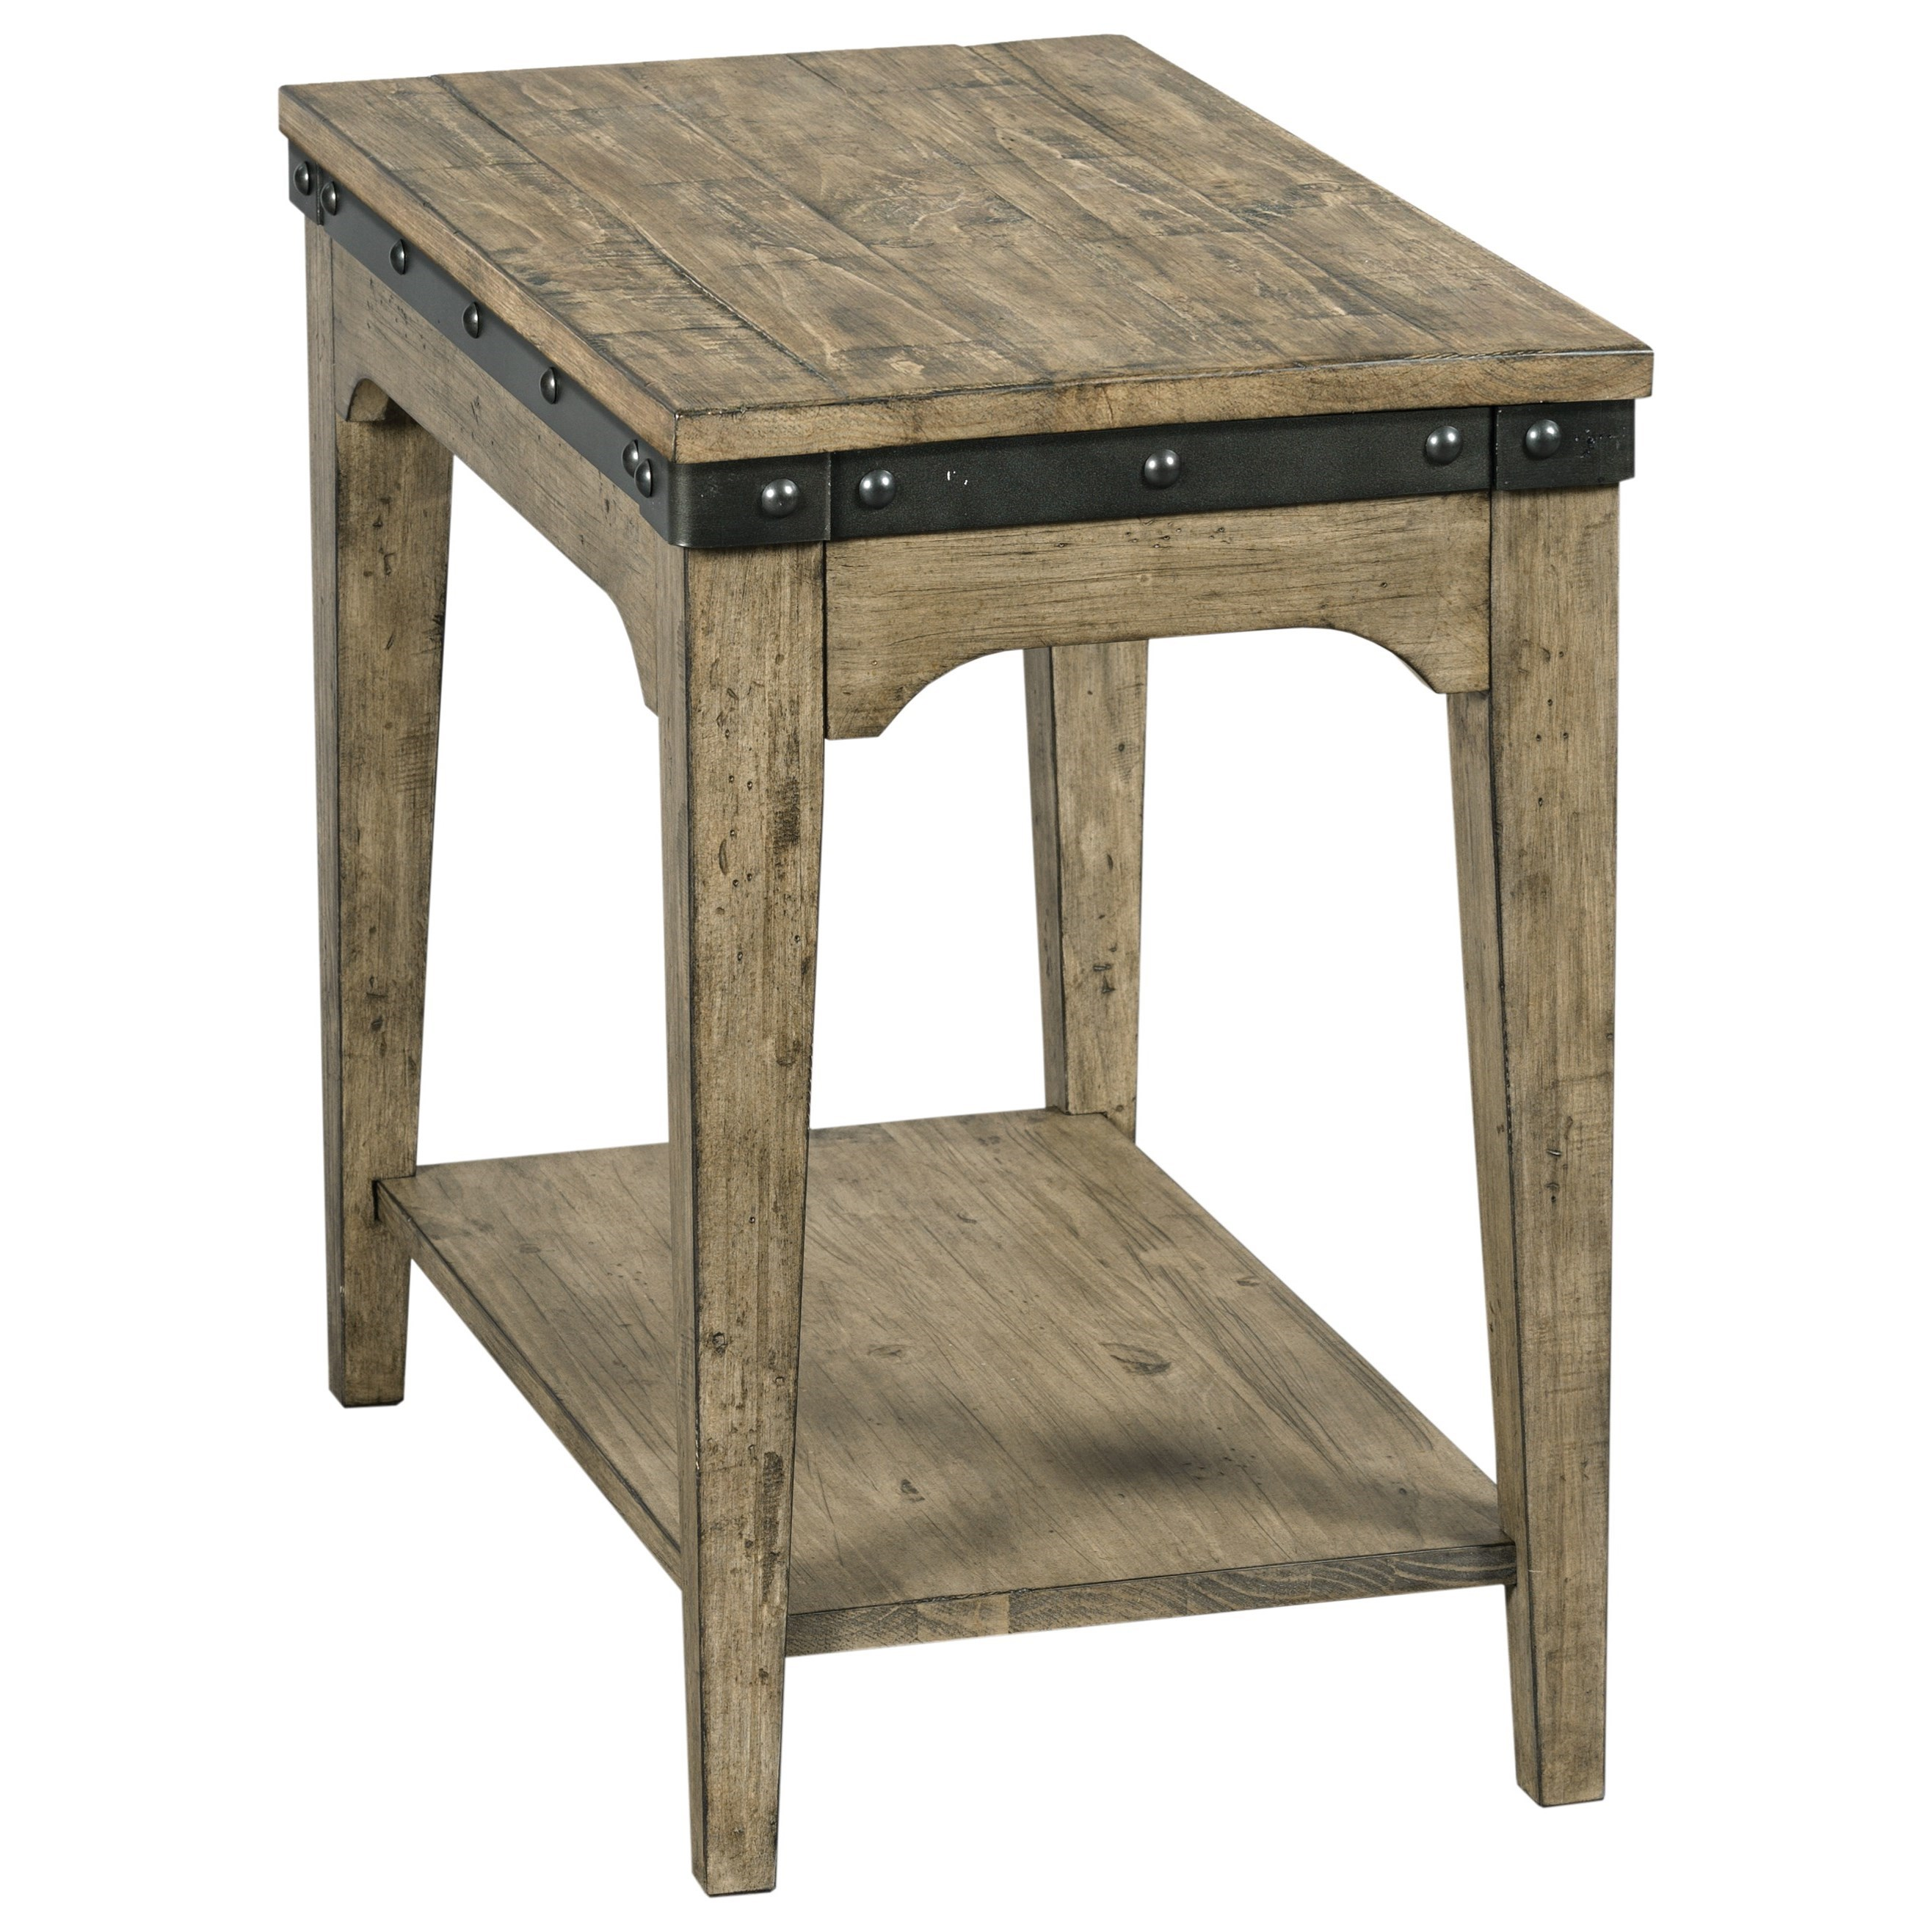 Plank Road Artisans Chairside Table                     at Stoney Creek Furniture